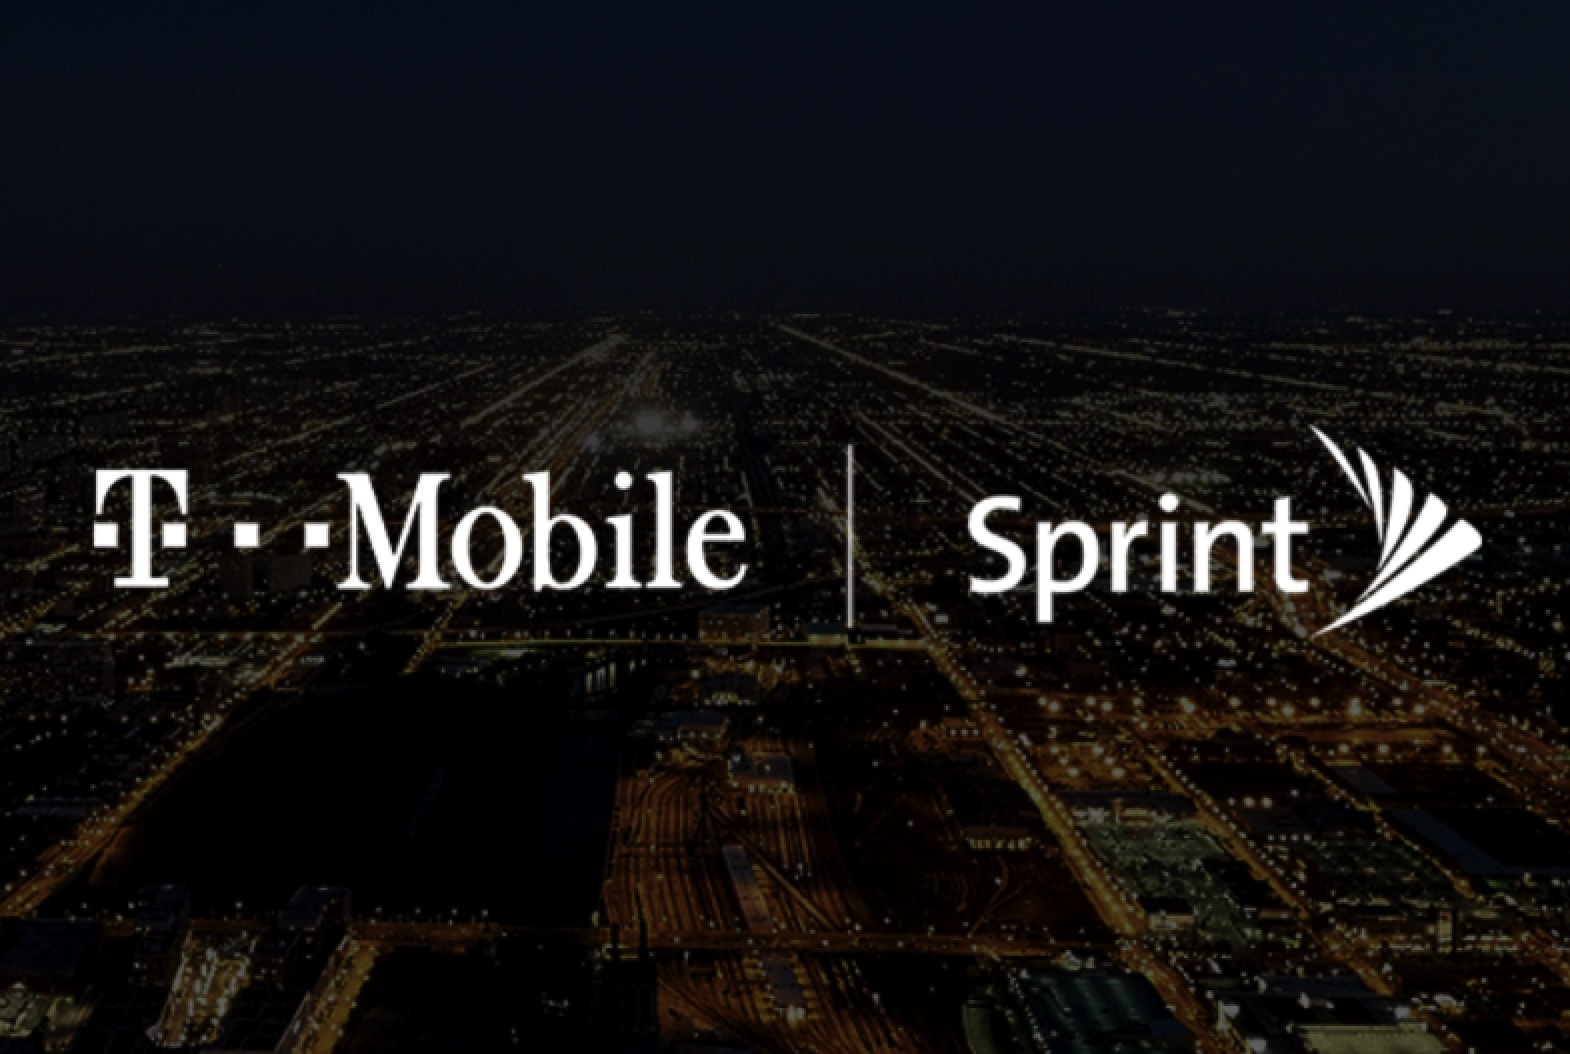 T-Mobile/Sprint